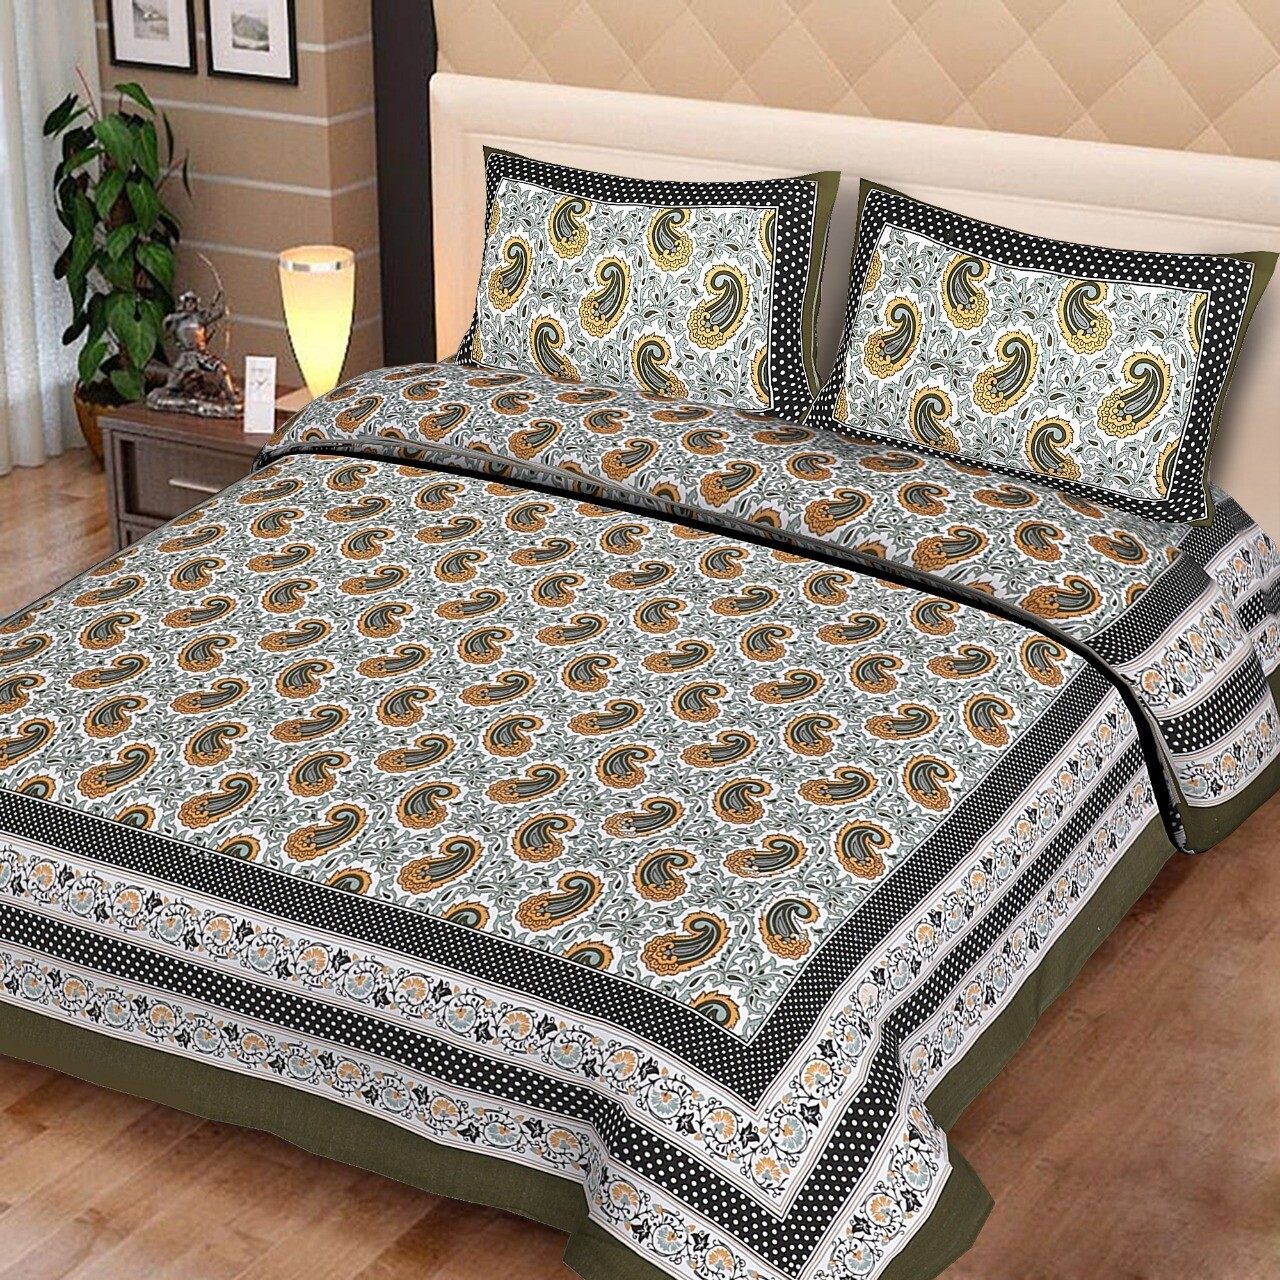 2024  Double Bedsheets With Two Pillow Cover